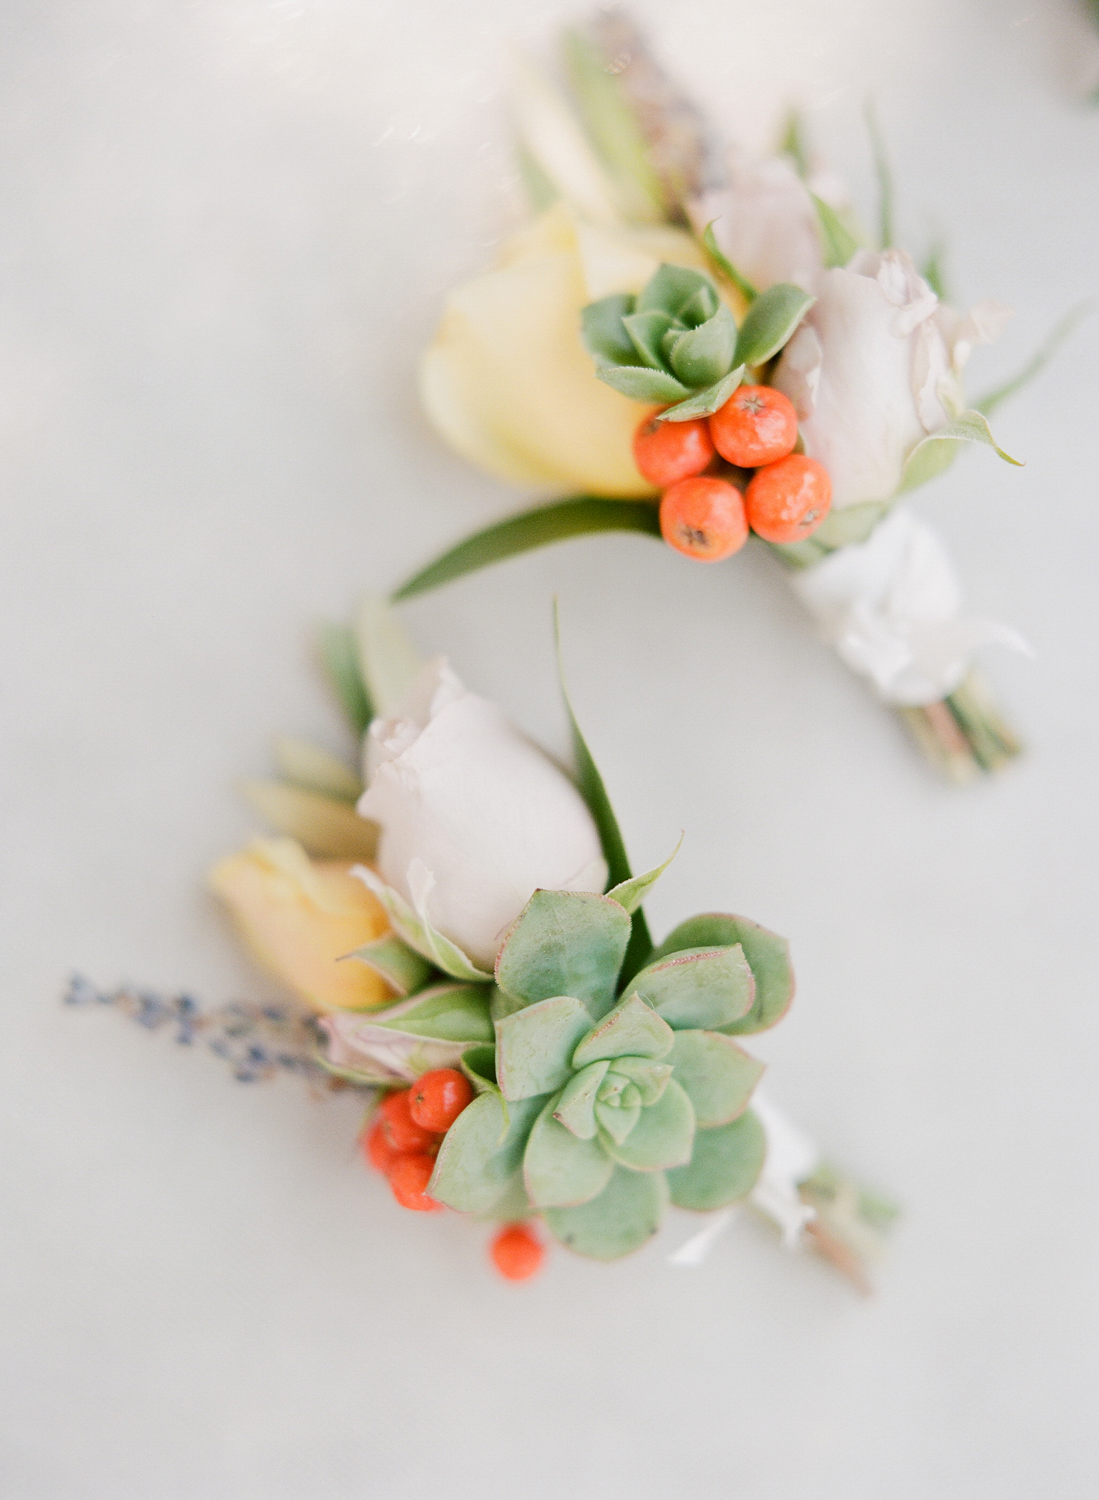 Succulent boutonnieres for both grooms; Sylvie Gil Photography